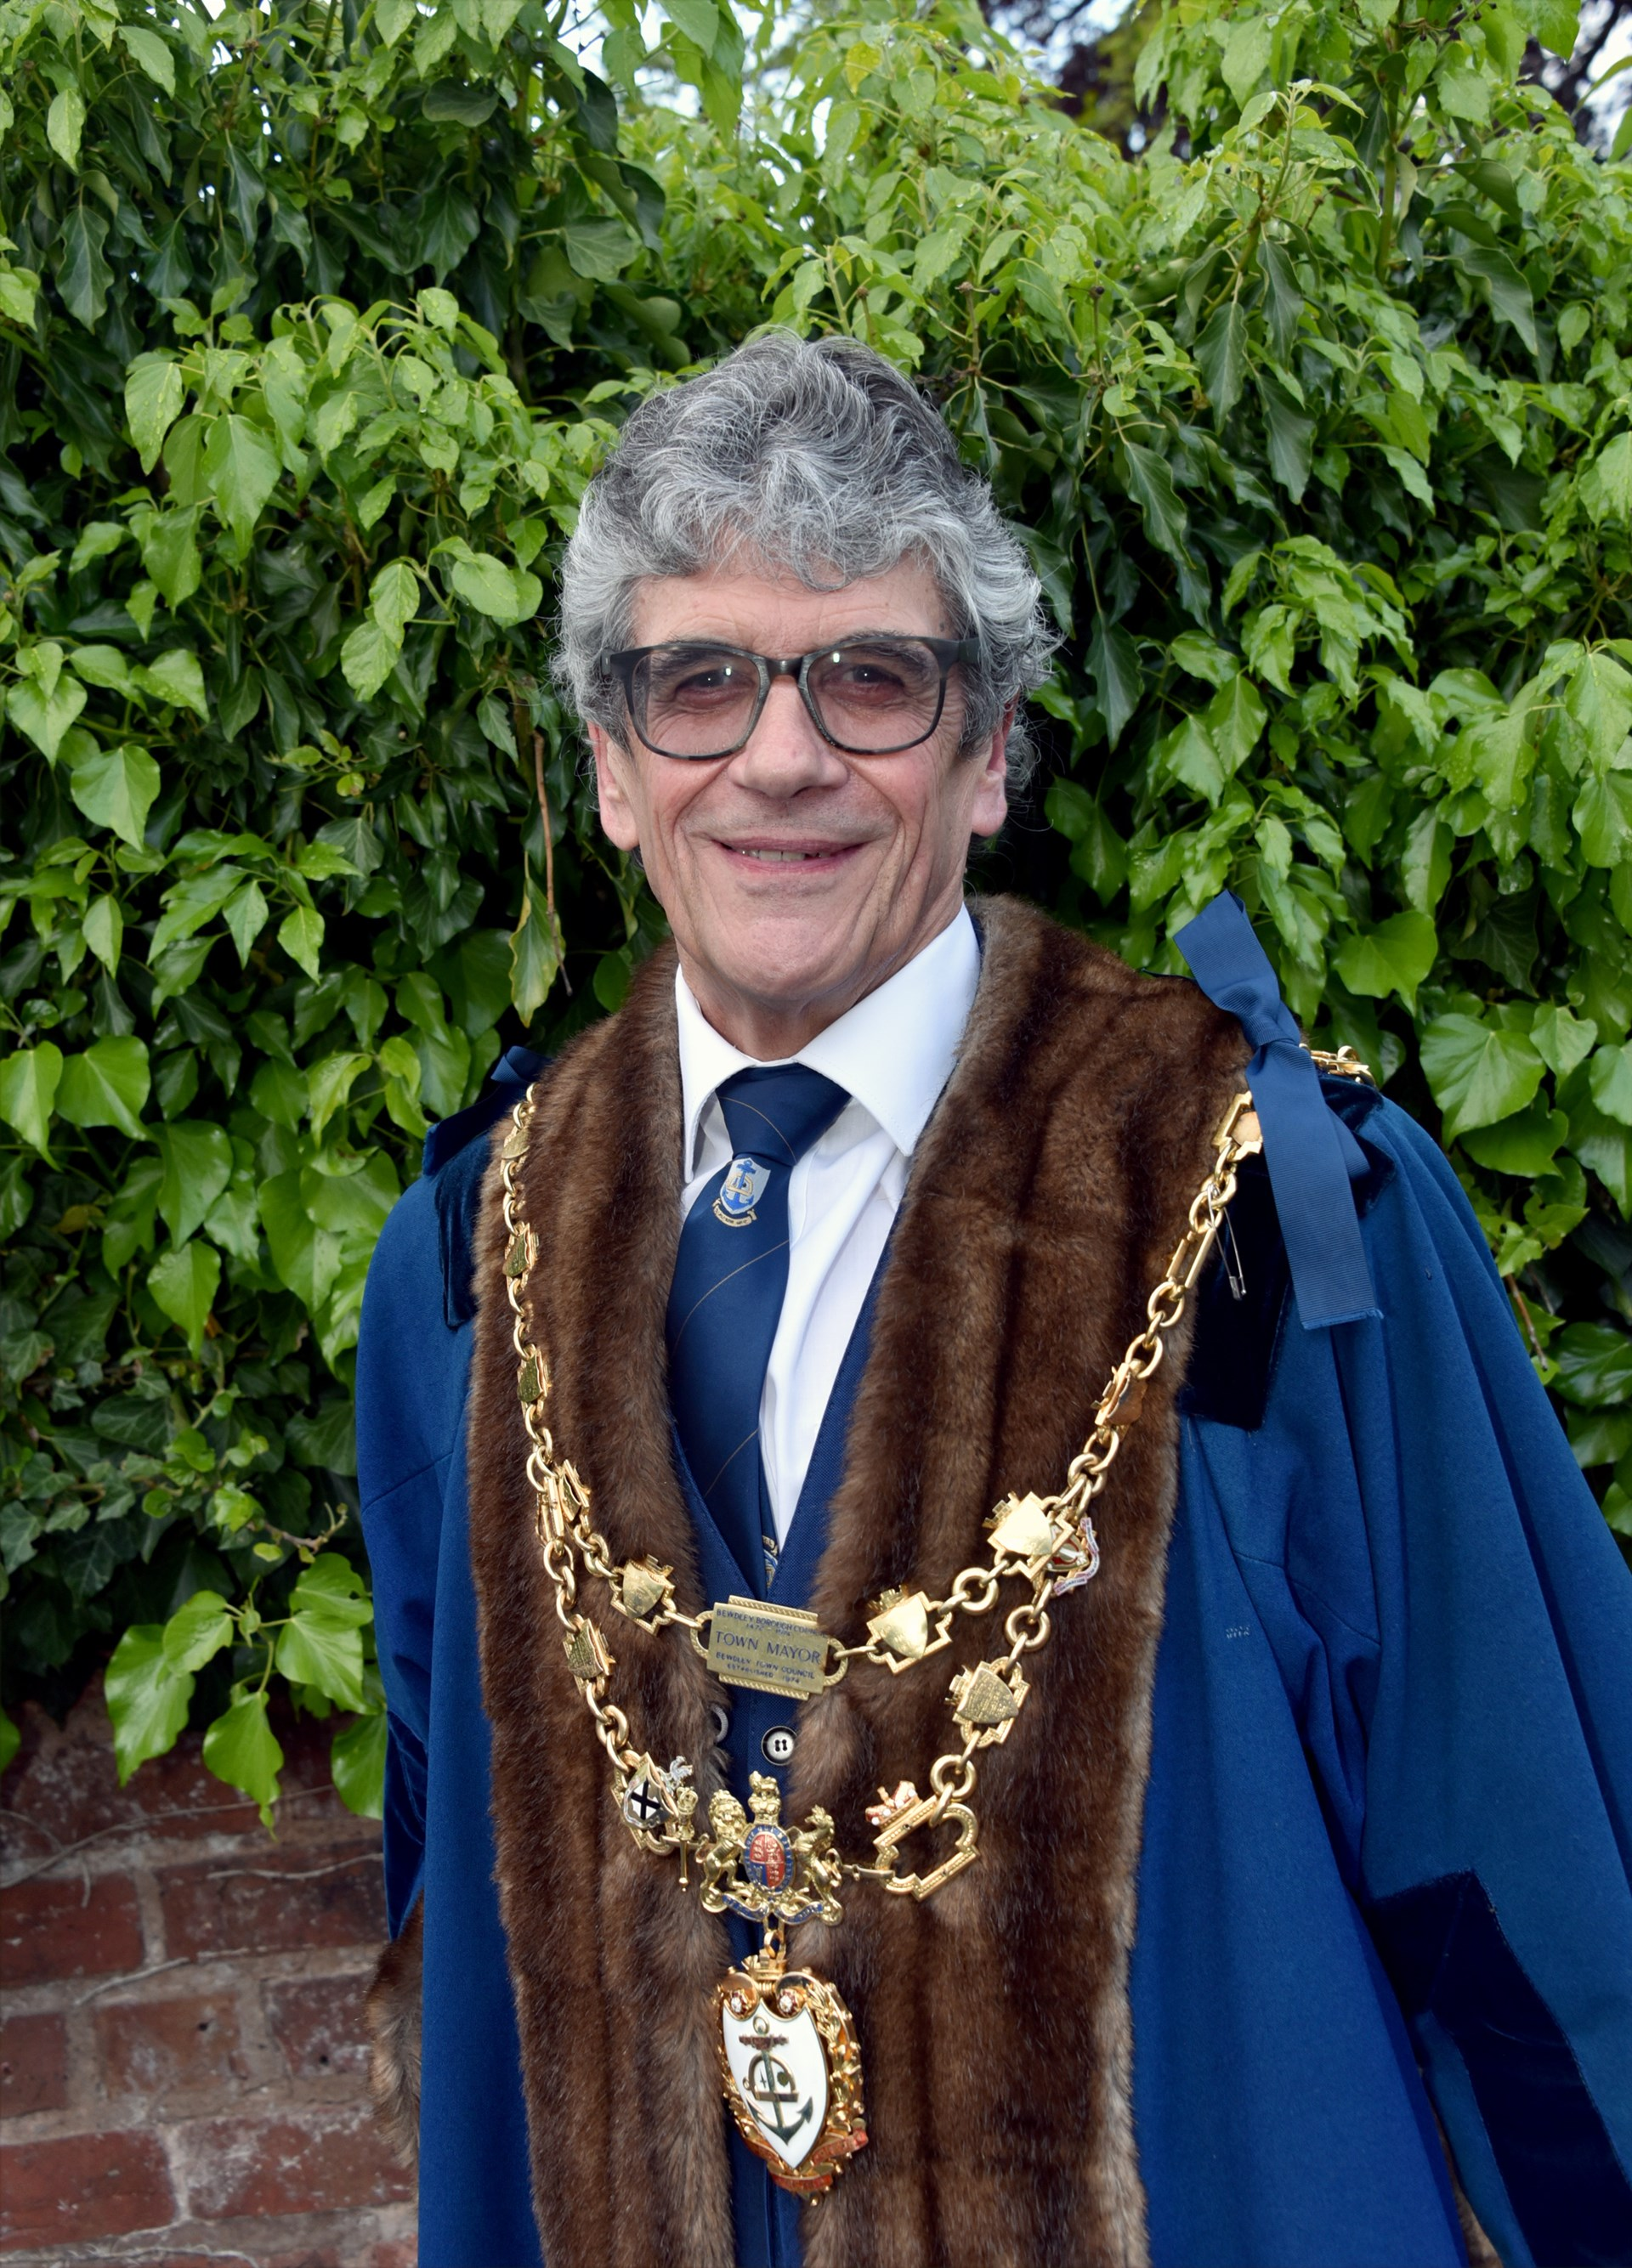 Councillor John Byng, Mayor of Bewdley